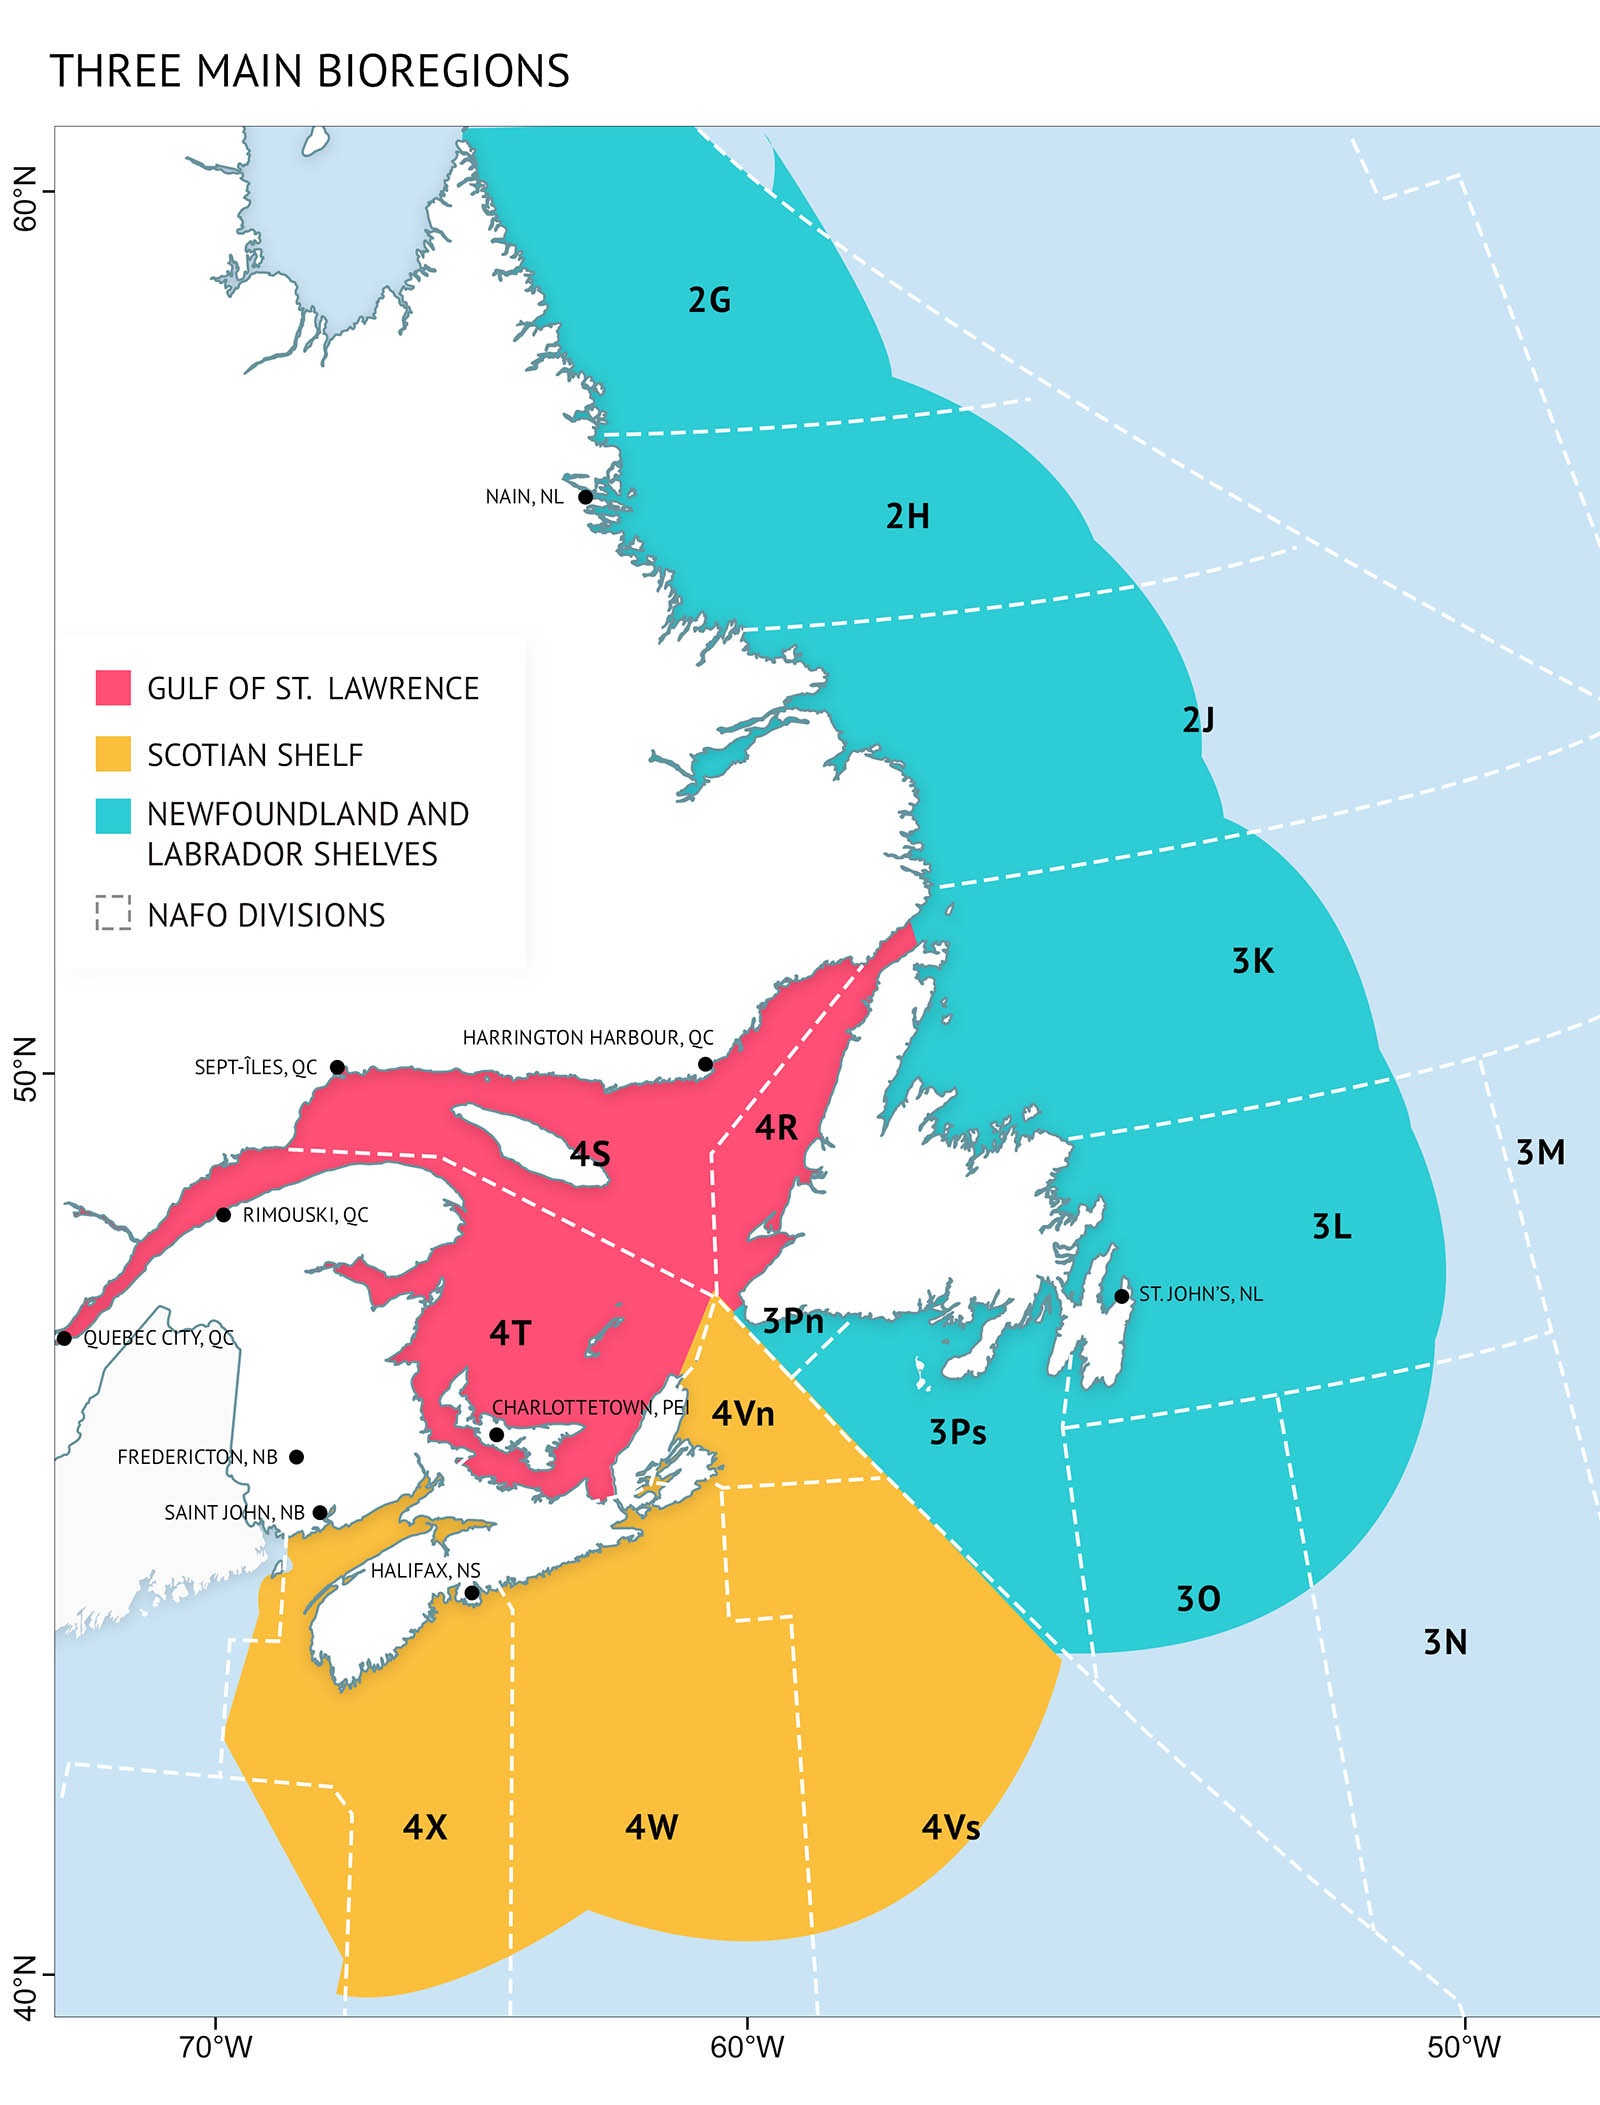 Figure 1: Three Bioregions of Atlantic Canada – Bioregion locations are based on ocean conditions and depth. Northwest Atlantic Fisheries Organization (NAFO) sub-divisions are boundaries used for science and management of various marine resources and are used throughout the report. A map of the Canadian Atlantic highlighting three Atlantic bioregions with different coloured shapes. The Newfoundland and Labrador Shelves bioregion is blue, the Scotian Shelf bioregion is orange, and the Gulf of St. Lawrence bioregion is dark pink. Boundaries of the Northwest Atlantic Fisheries Organization (NAFO) sub-divisions are shown in the waters off the Atlantic coast as polygons bordered by white dashed lines. Each NAFO area has a number and letter to indicate their name. A legend sits on the left of the map indicating bioregions and NAFO areas. The location of cities mentioned in the report are shown with black dots across the map – Saint John, NB; Fredericton, NB; Quebec City, QC; Rimouski, QC; Sept-Iles, QC, Harrington Harbour, QC; St. John's, NL; Charlottetown, PEI; Halifax, NS.